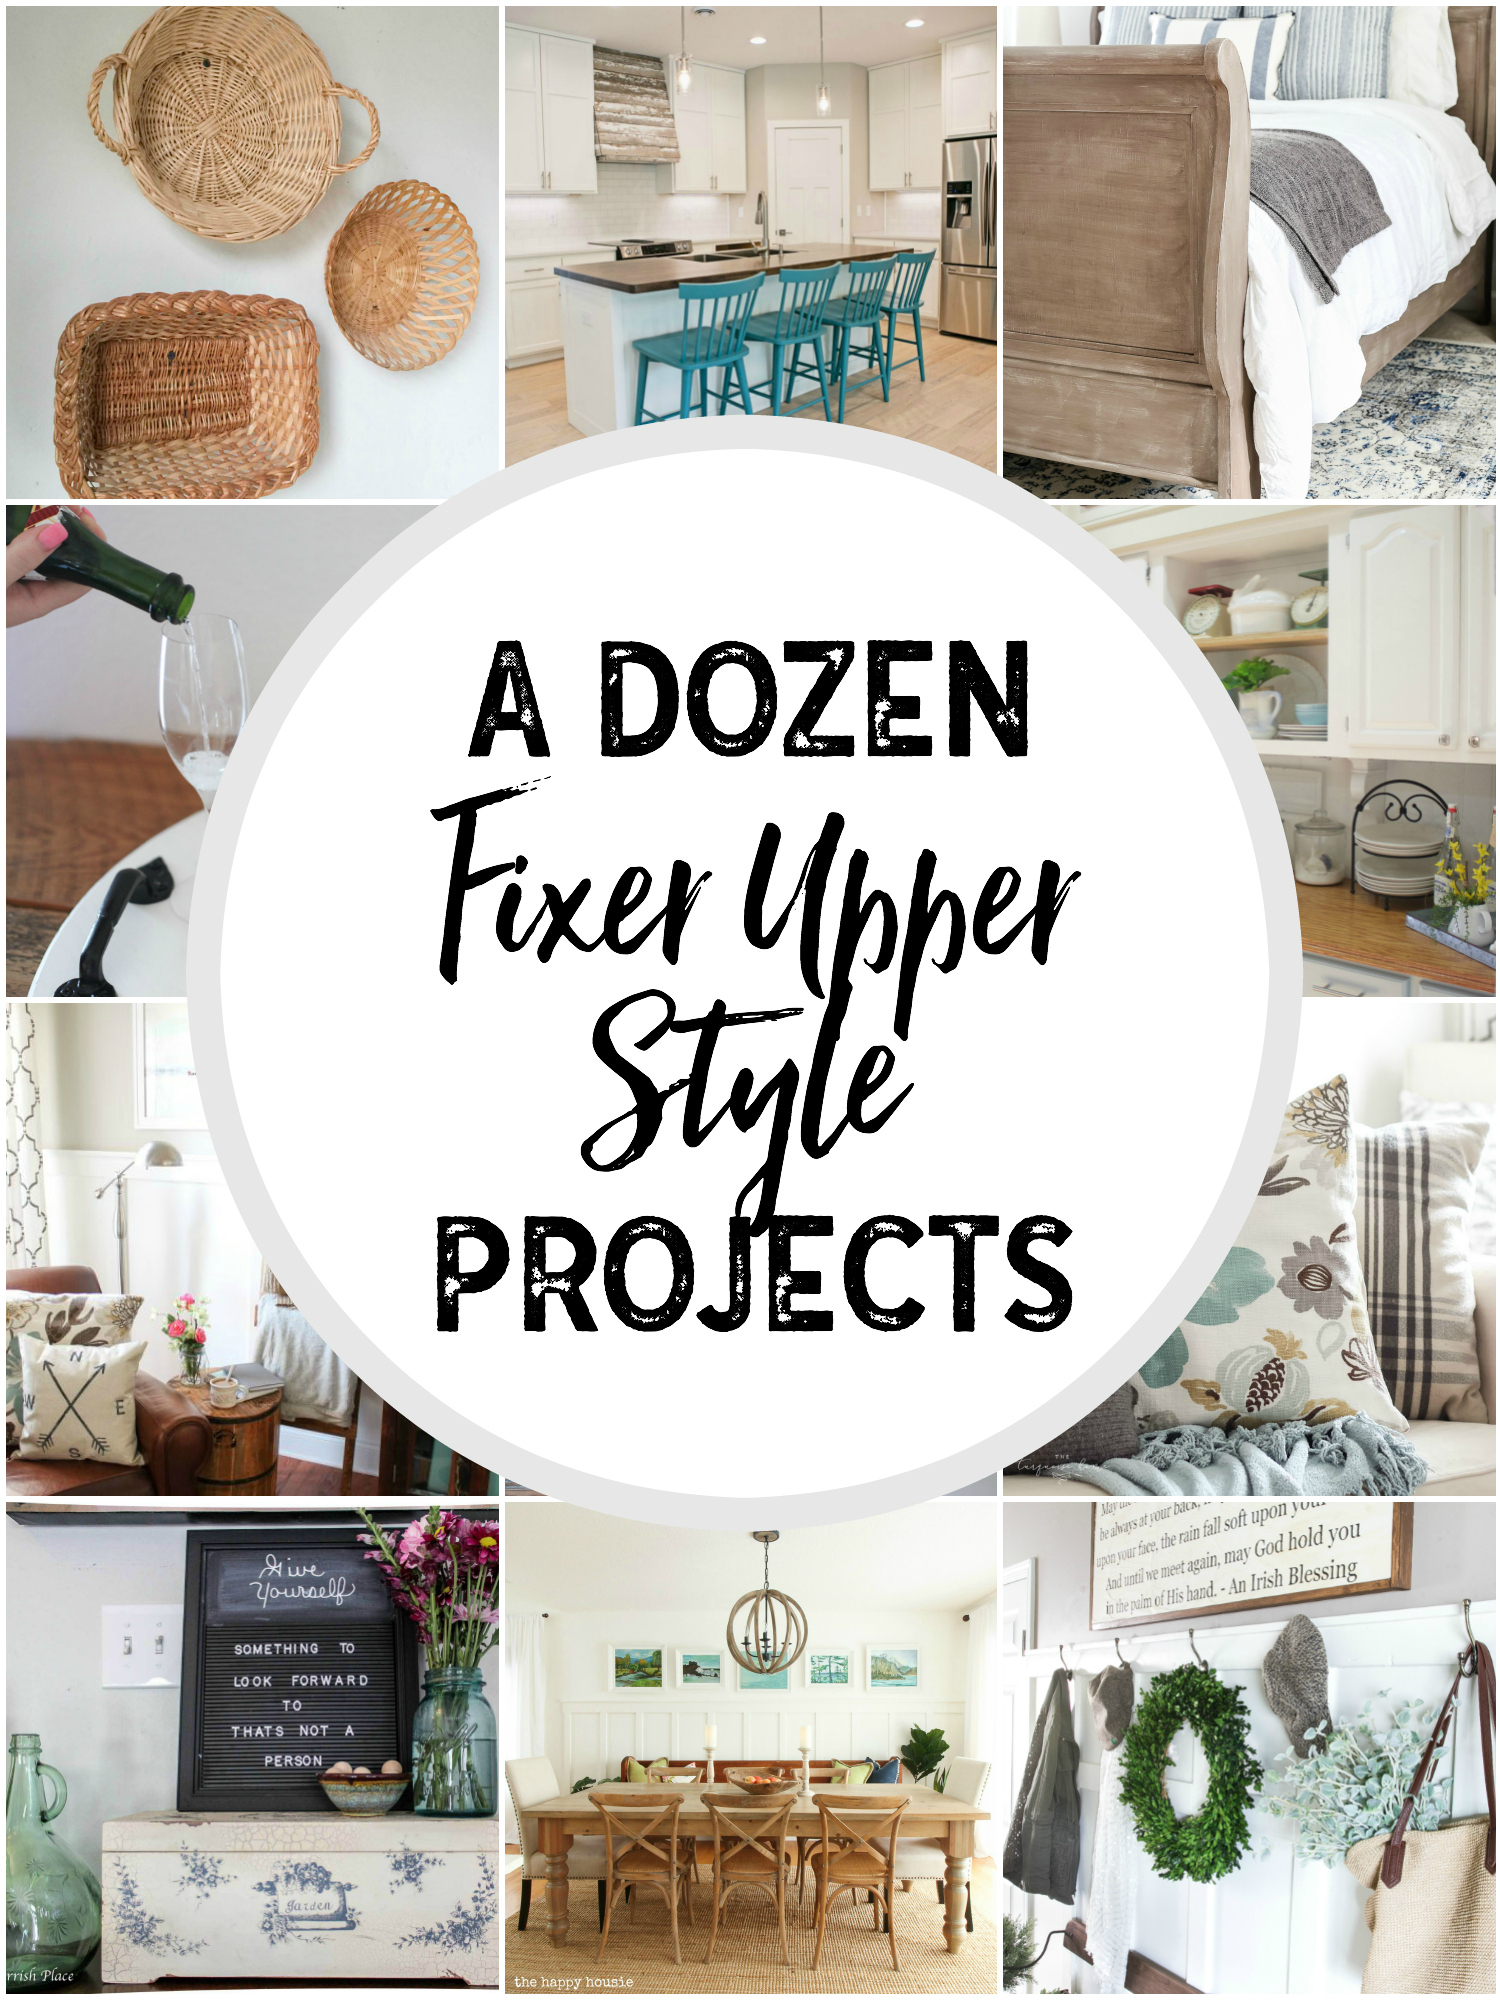 Dozen Fixer Upper Style Projects: How to get that farmhouse or Fixer ...